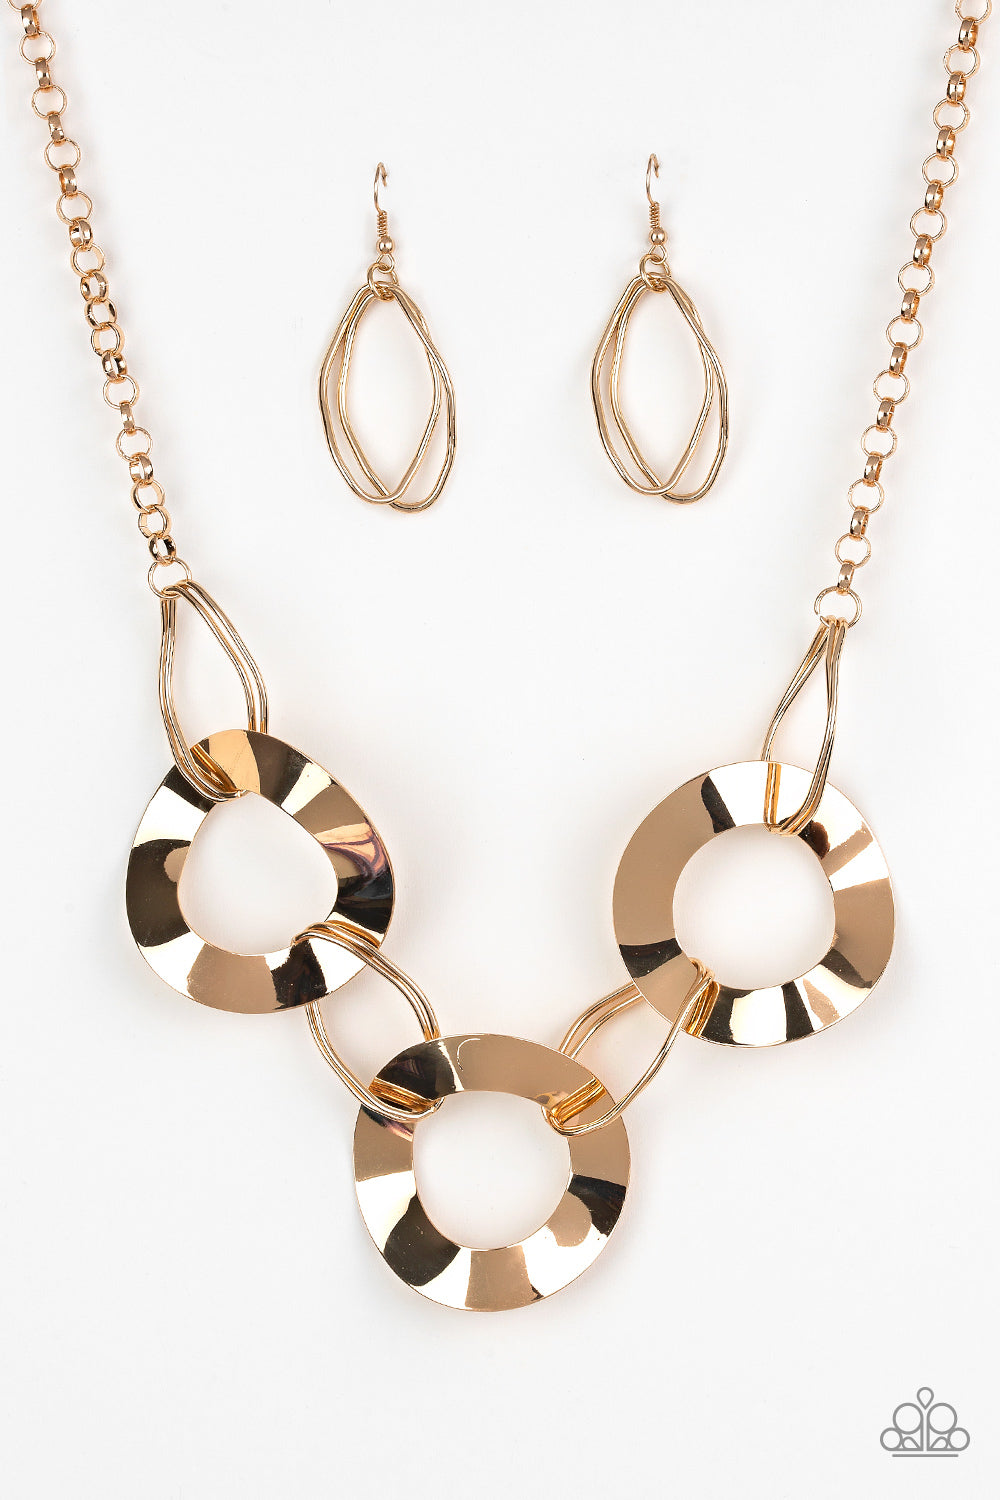 Paparazzi Accessories - Paparazzi Necklace - Modern Mechanics- Gold - Necklaces